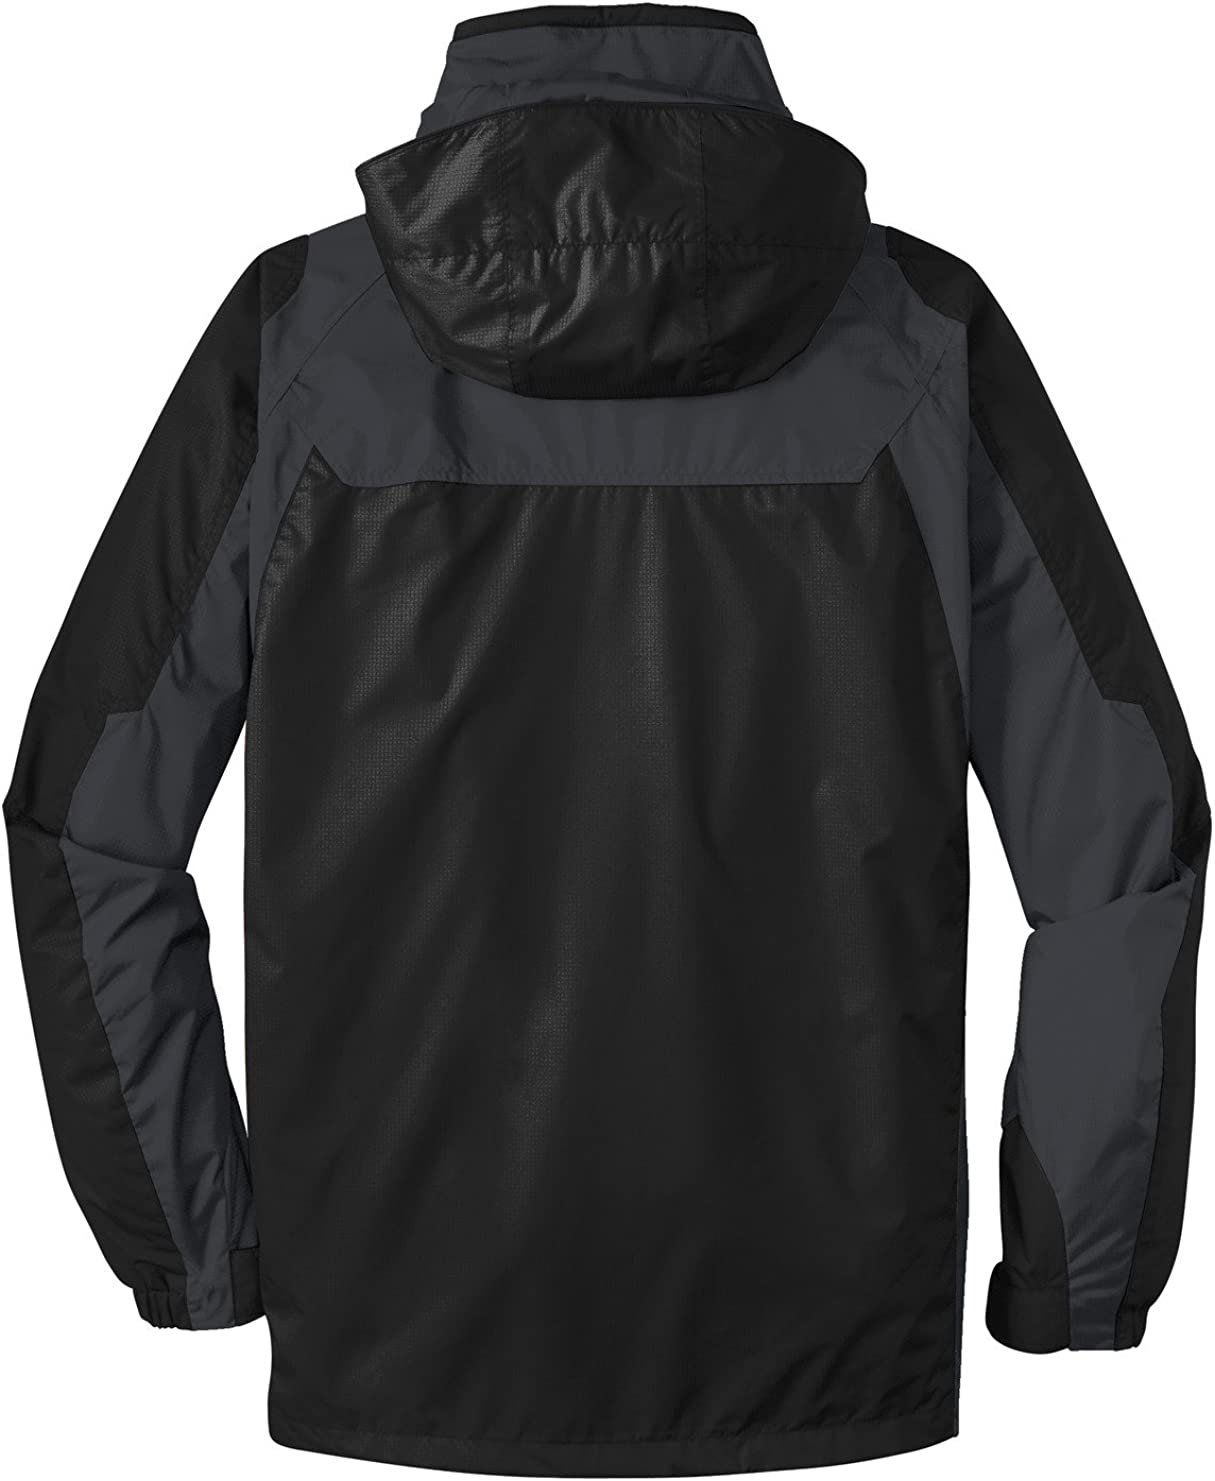 Joes USA Mens Storm Ready 3-in-1 Layered Waterproof Jackets in Adult Sizes XS-4XL